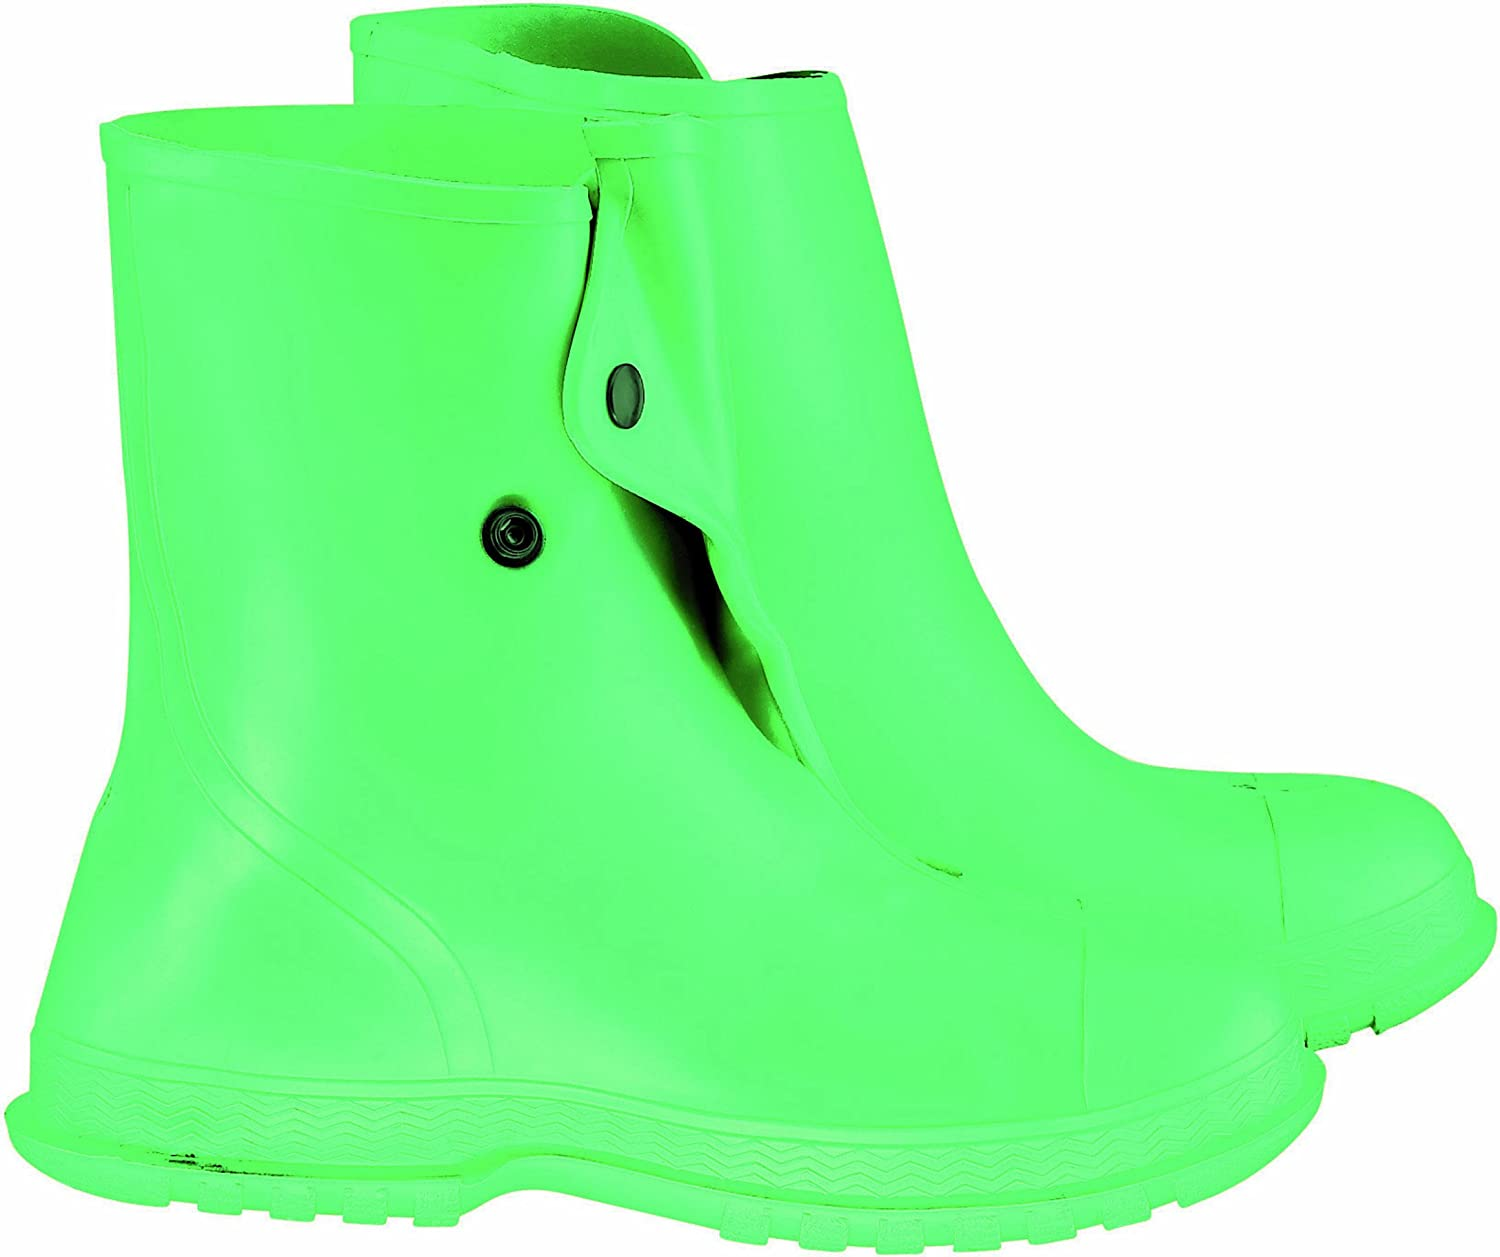 ONGUARD 87025 Men's Chemical Overshoe with 4-Way Cleated Outsole, 10